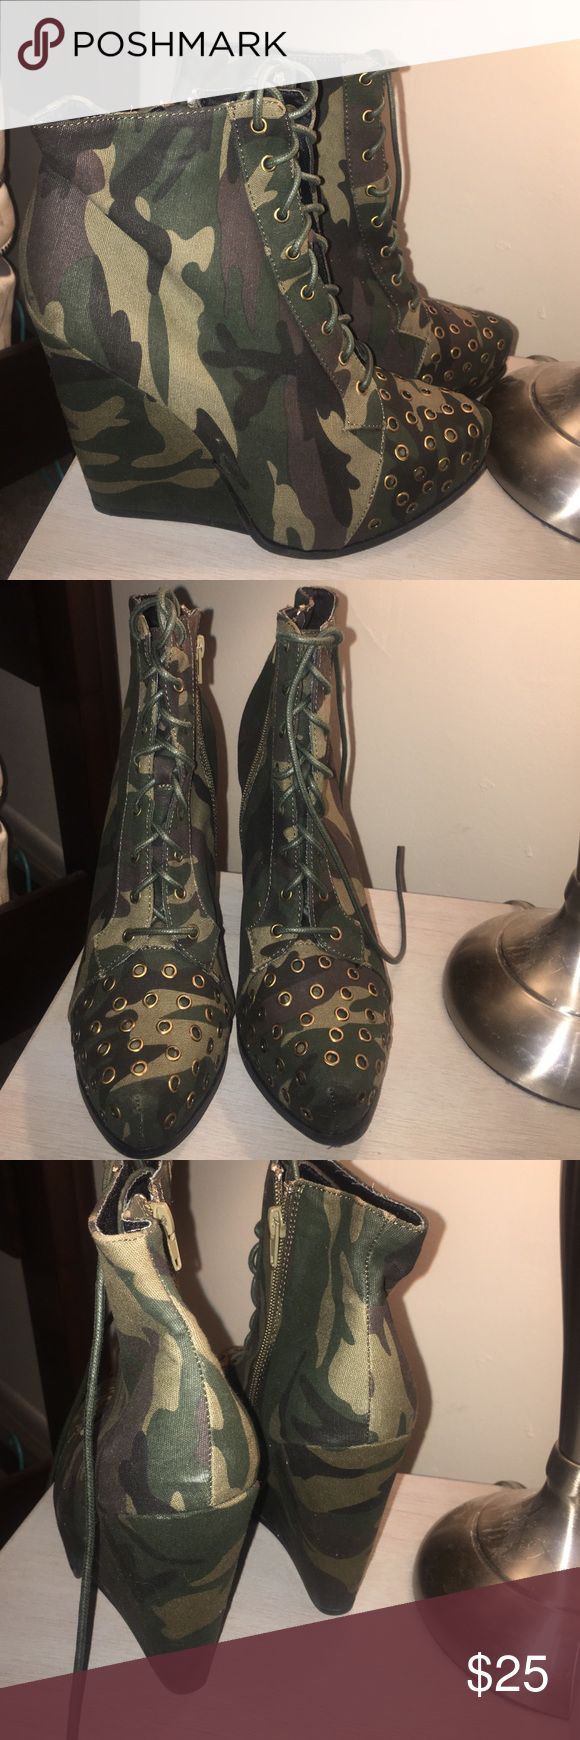 NEW camouflage ankle boots lace up sz 10 Great buy for fall no holes or stains. Comes from a smoke free home. I will be listing a lot of amazing items . Take a look! Any questions just ask Happy Poshing!!! Never worn Qupid Shoes Ankle Boots & Booties